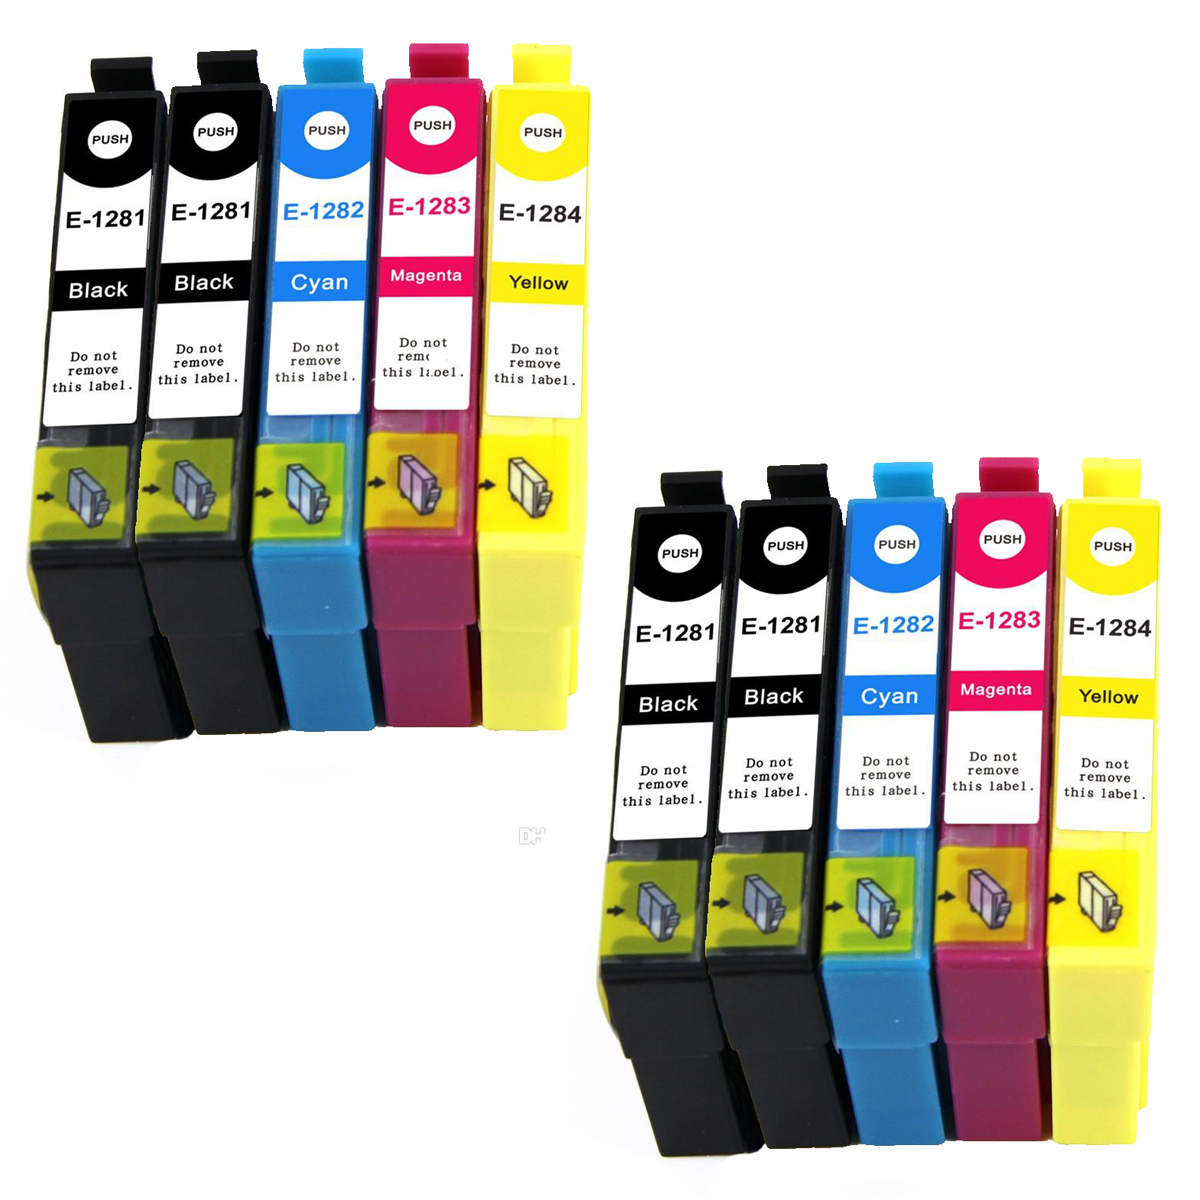 10 ink cartriges Model T1281 T1282 T1283 T1284 T1288 Compatible with epson printers Stylus S22 SX125 SX130 SX230 SX235W Ink Cartridges     - title=